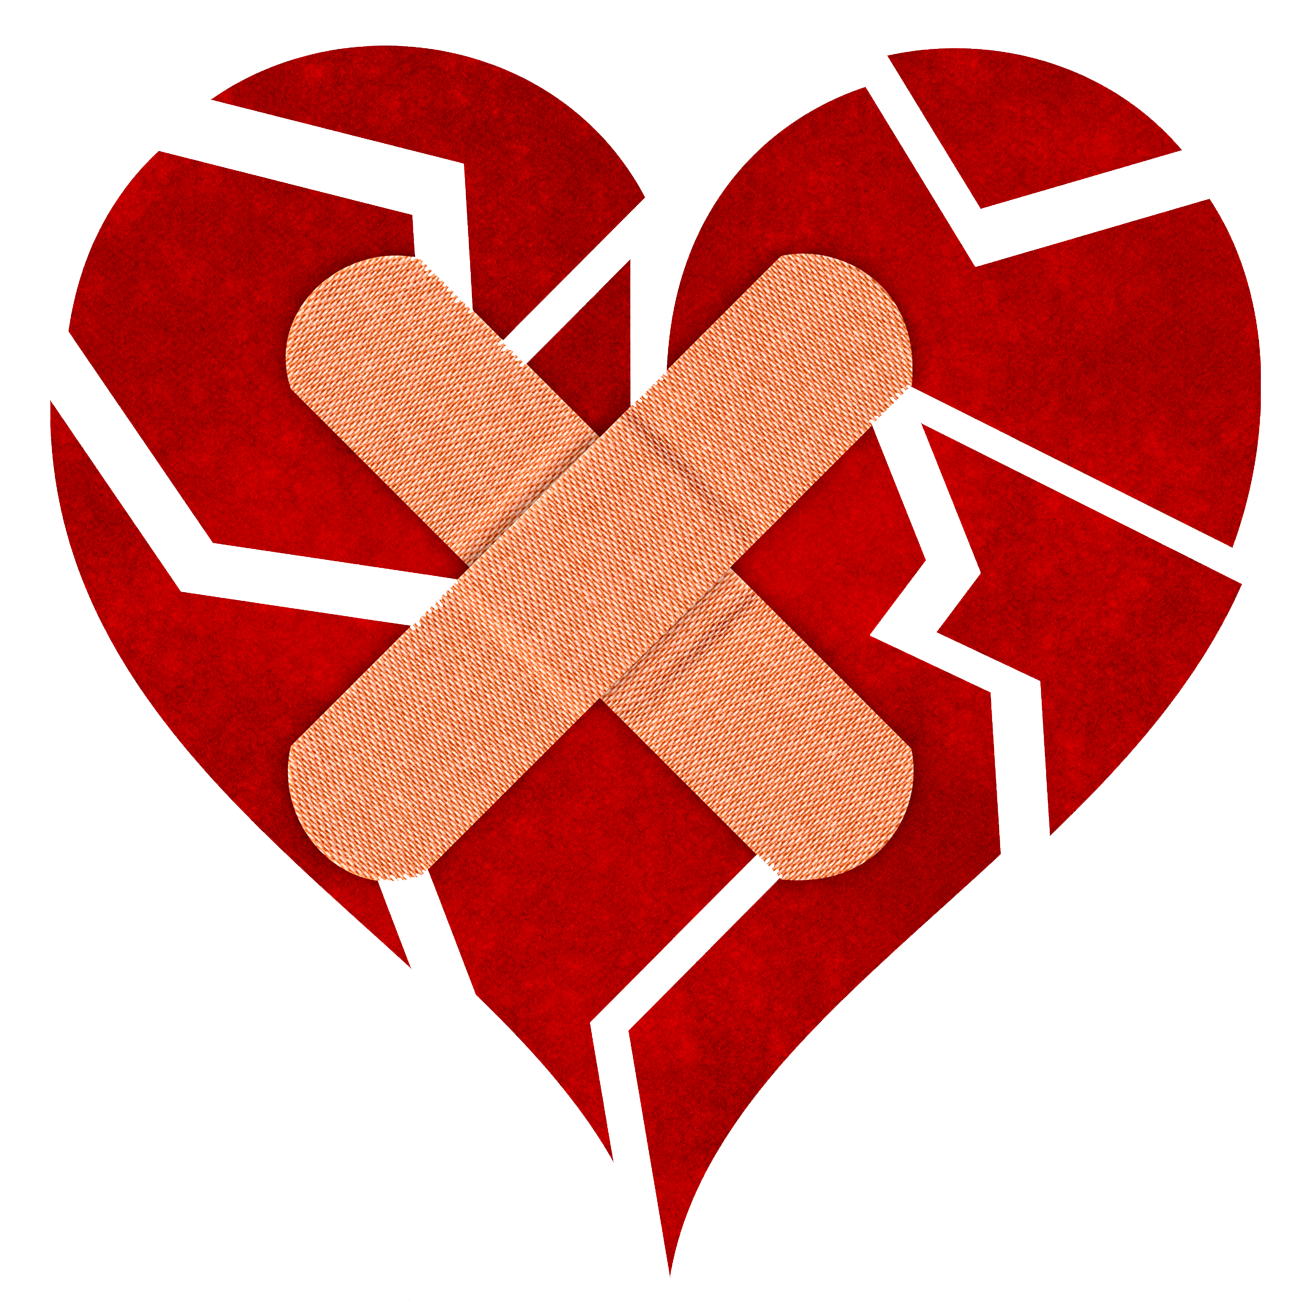 Broken Hearts Png - Broken heart png #38792 - Free Icons and PNG Backgrounds